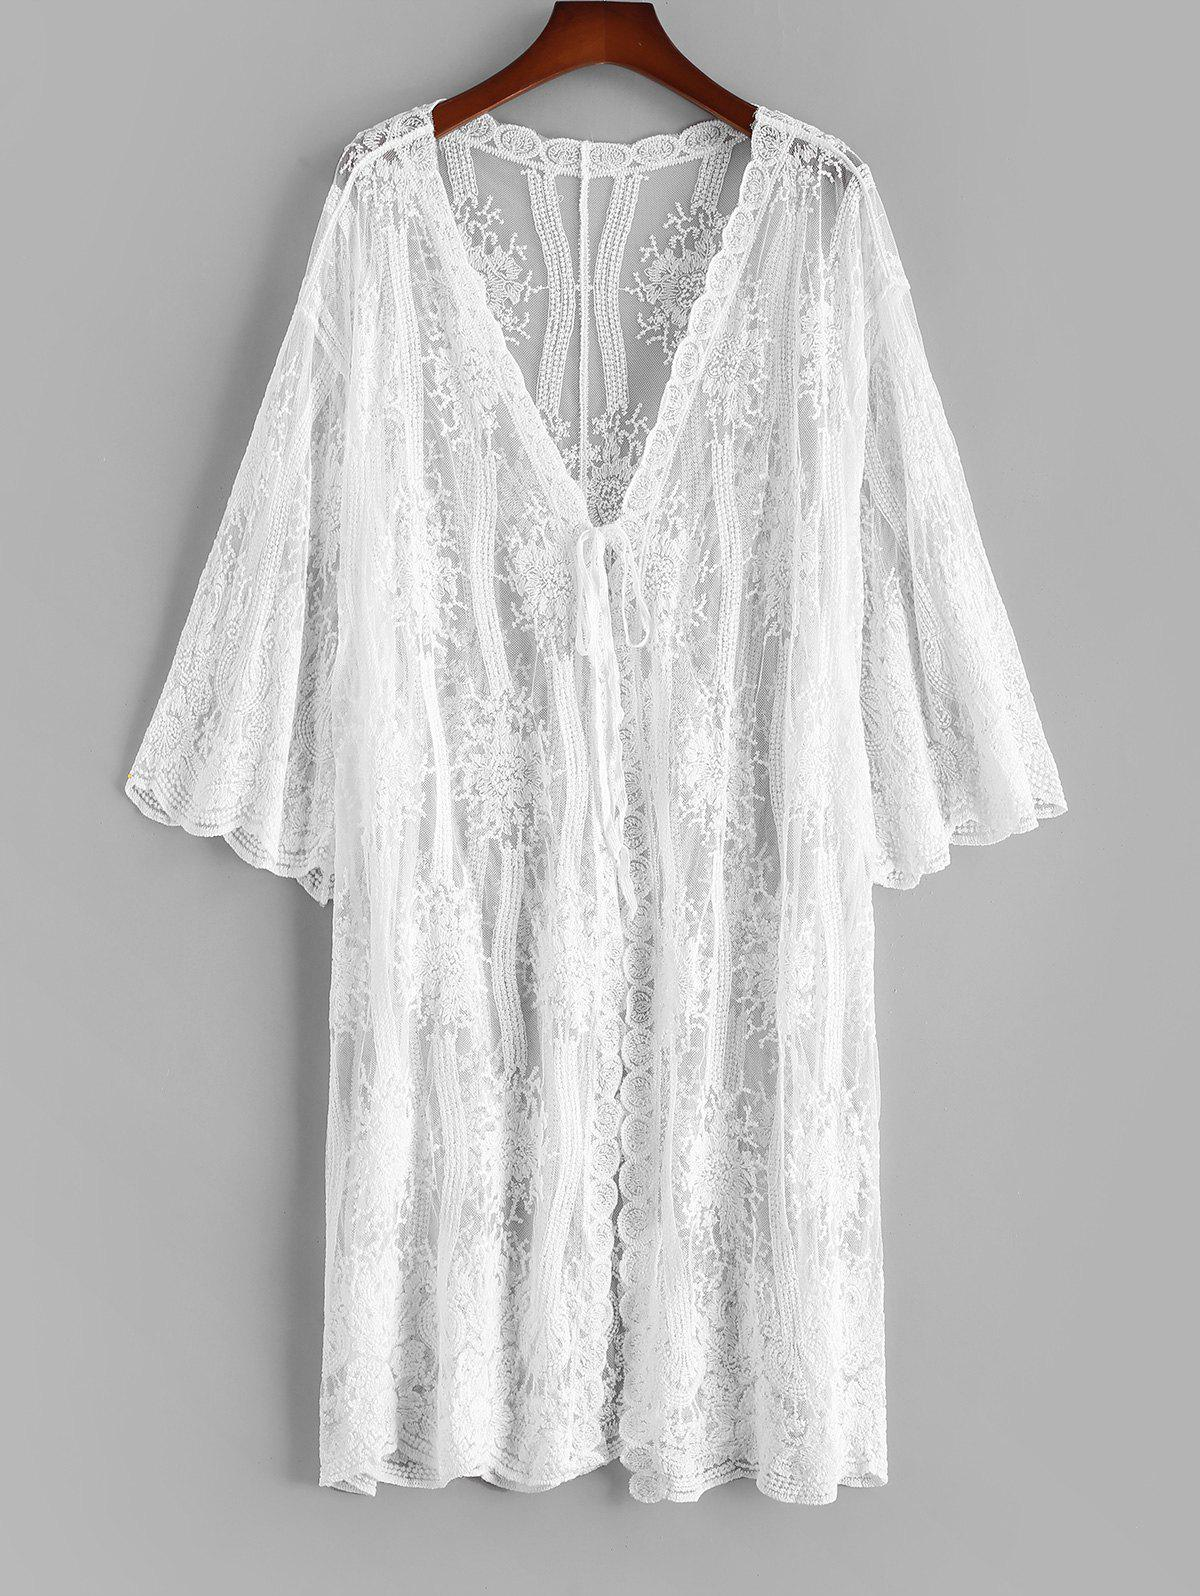 Tie Front Scalloped Sheer Lace Beach Cover Up - WHITE ONE SIZE